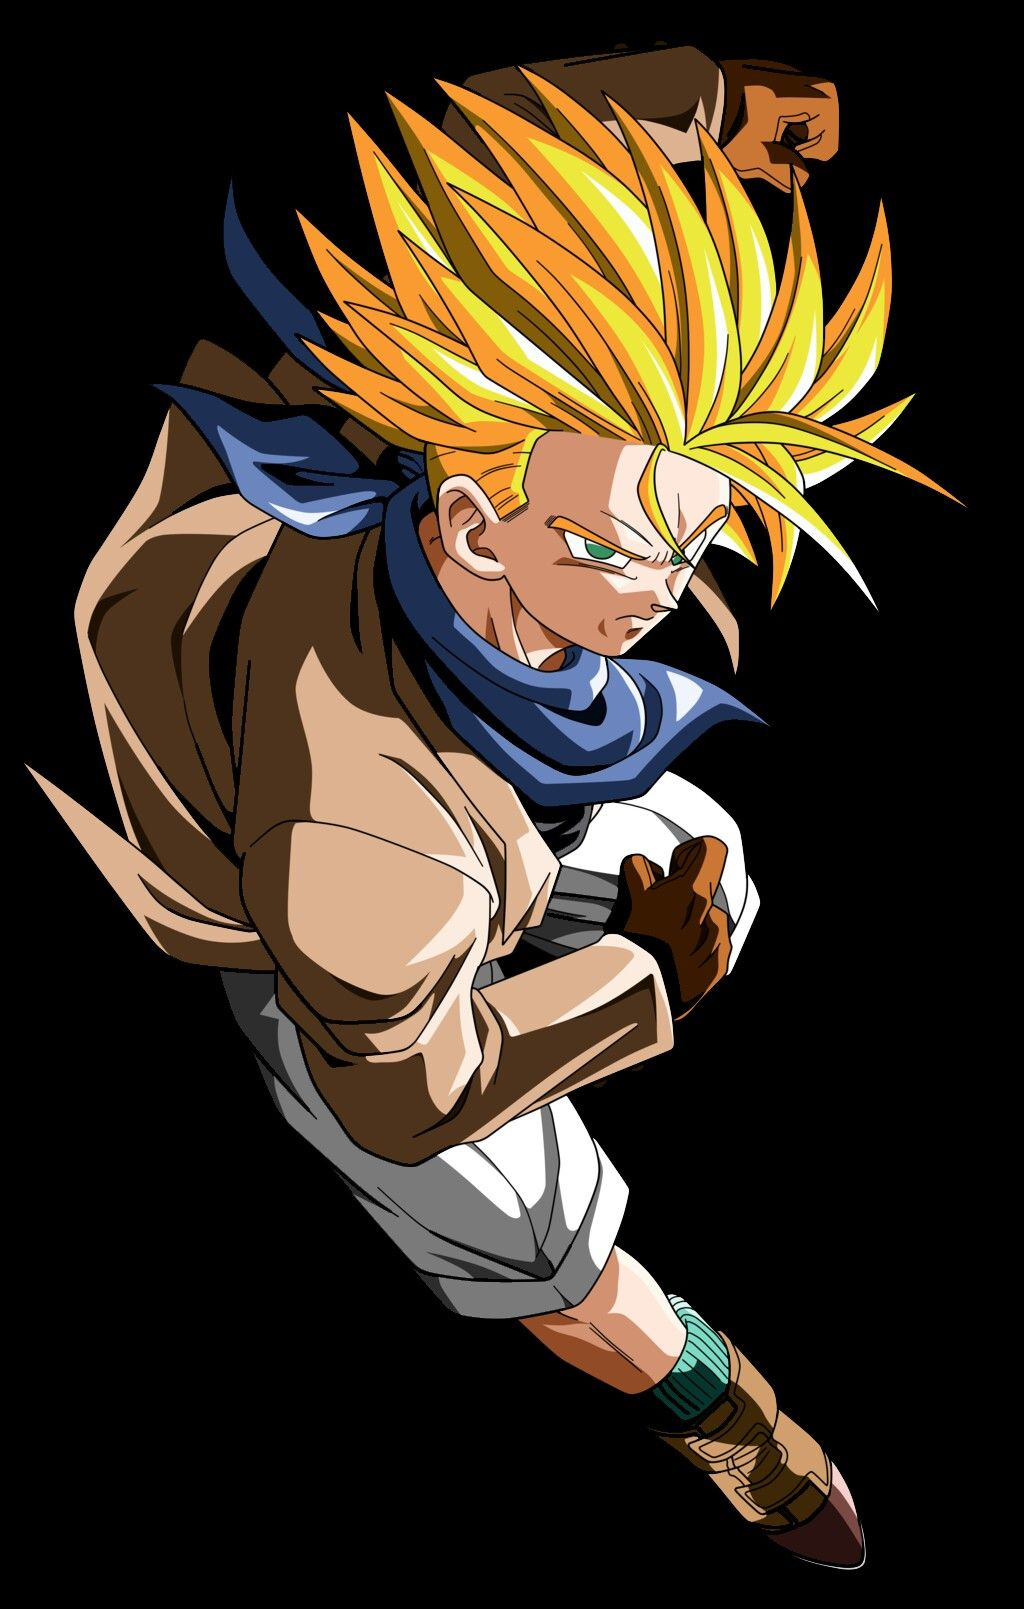 Trunks Gt Ssj Dragon Ball Super Manga Dragon Ball Wallpapers